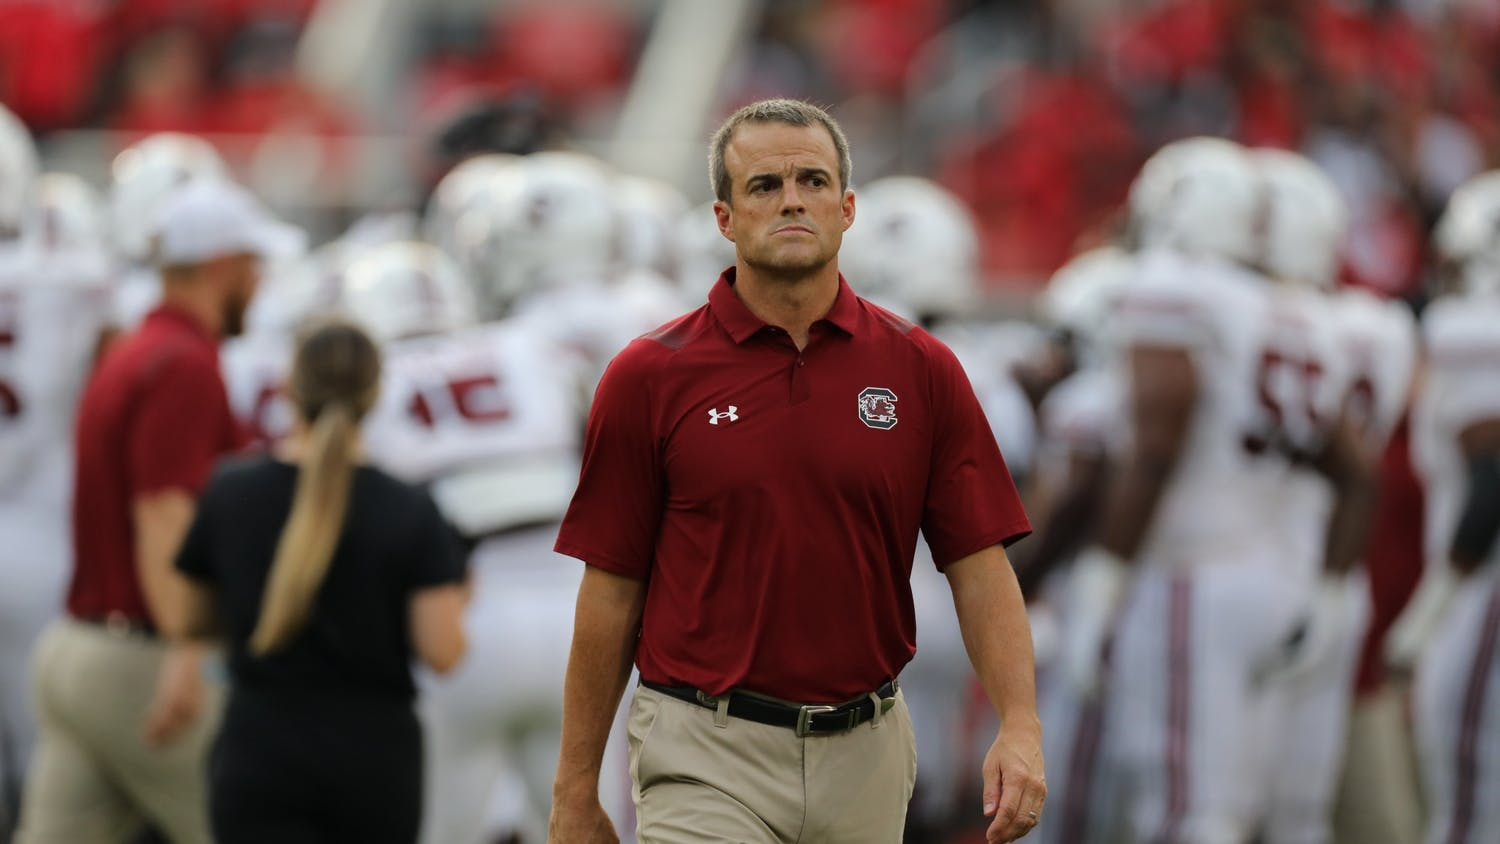 Head coach Shane Beamer walks on the sidelines during warmups before South Carolina's game against Georgia on Sept. 18, 2021.